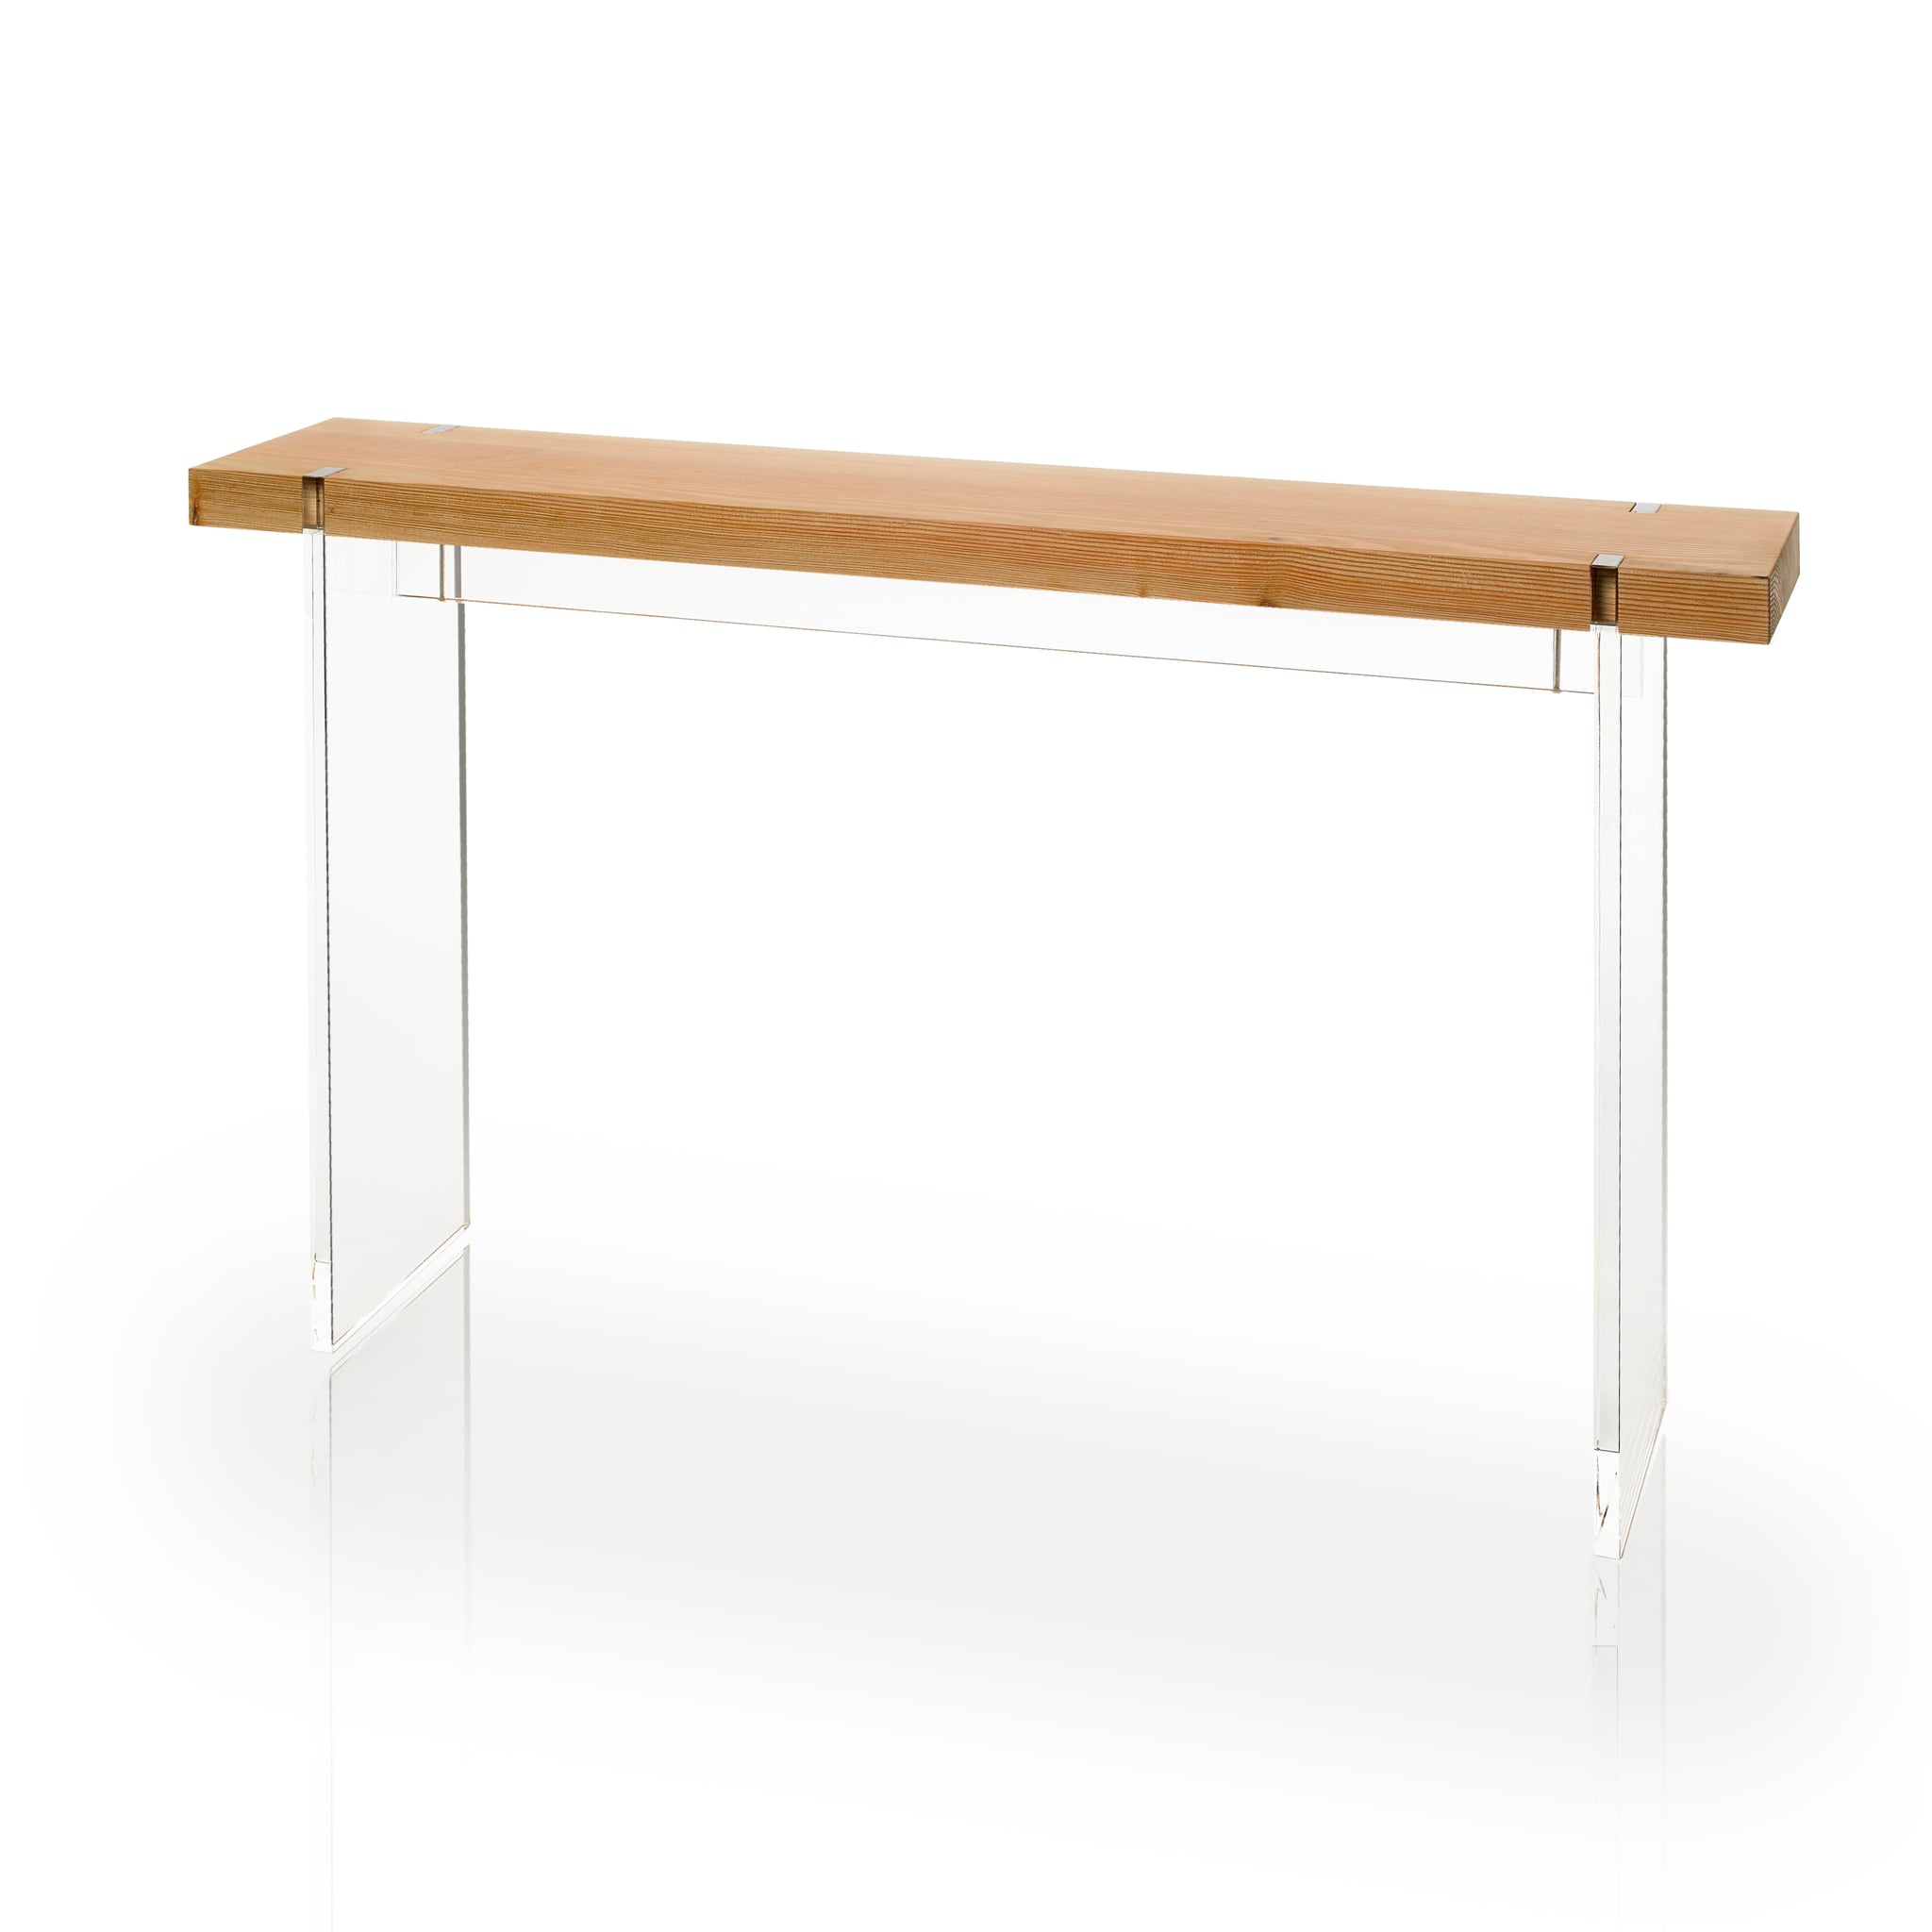 this floating acrylic console table is topped with solid douglas fir in two finishes natural and torched and includes a sexy mark that we think youu0027ll